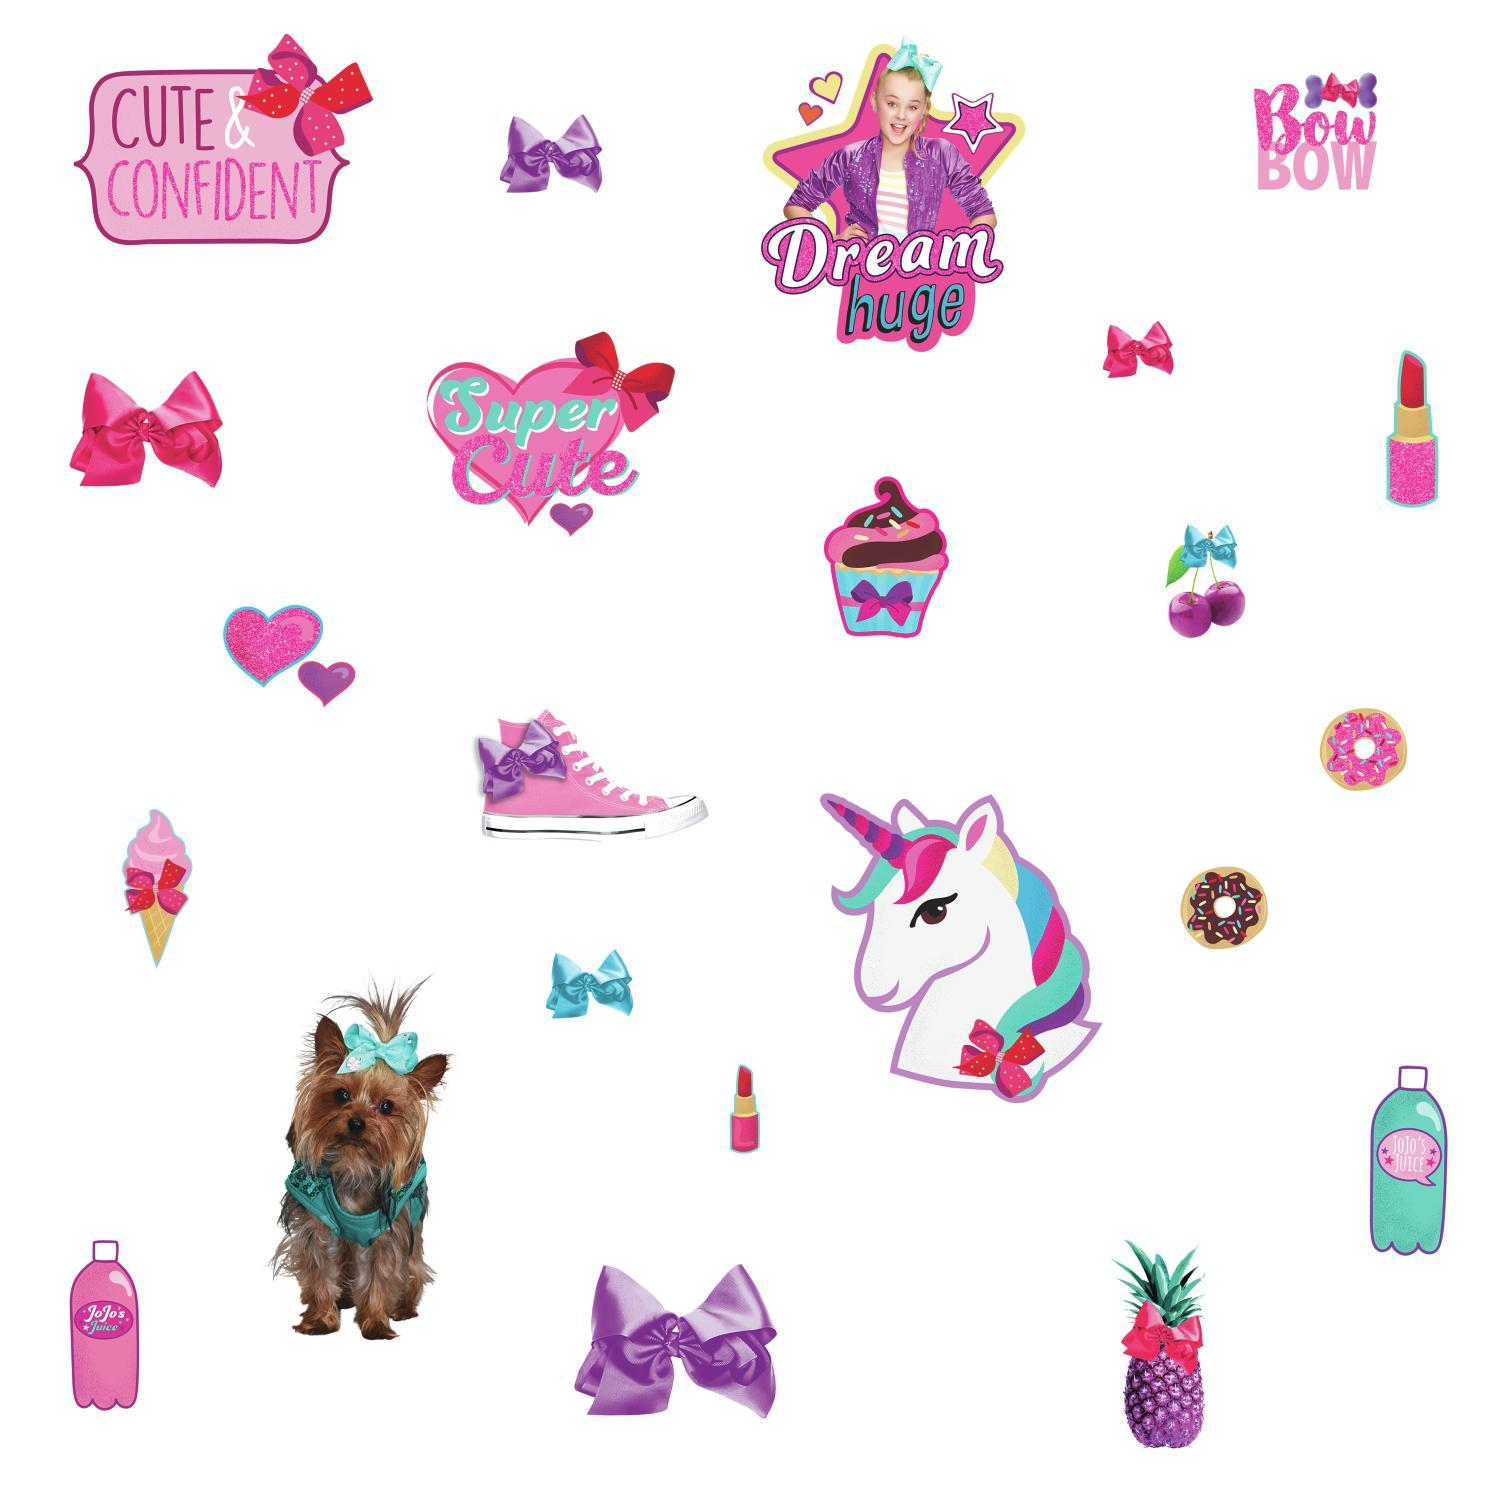 JoJo Siwa Cute and Confident Peel and Stick Wall Decals with Glitter.